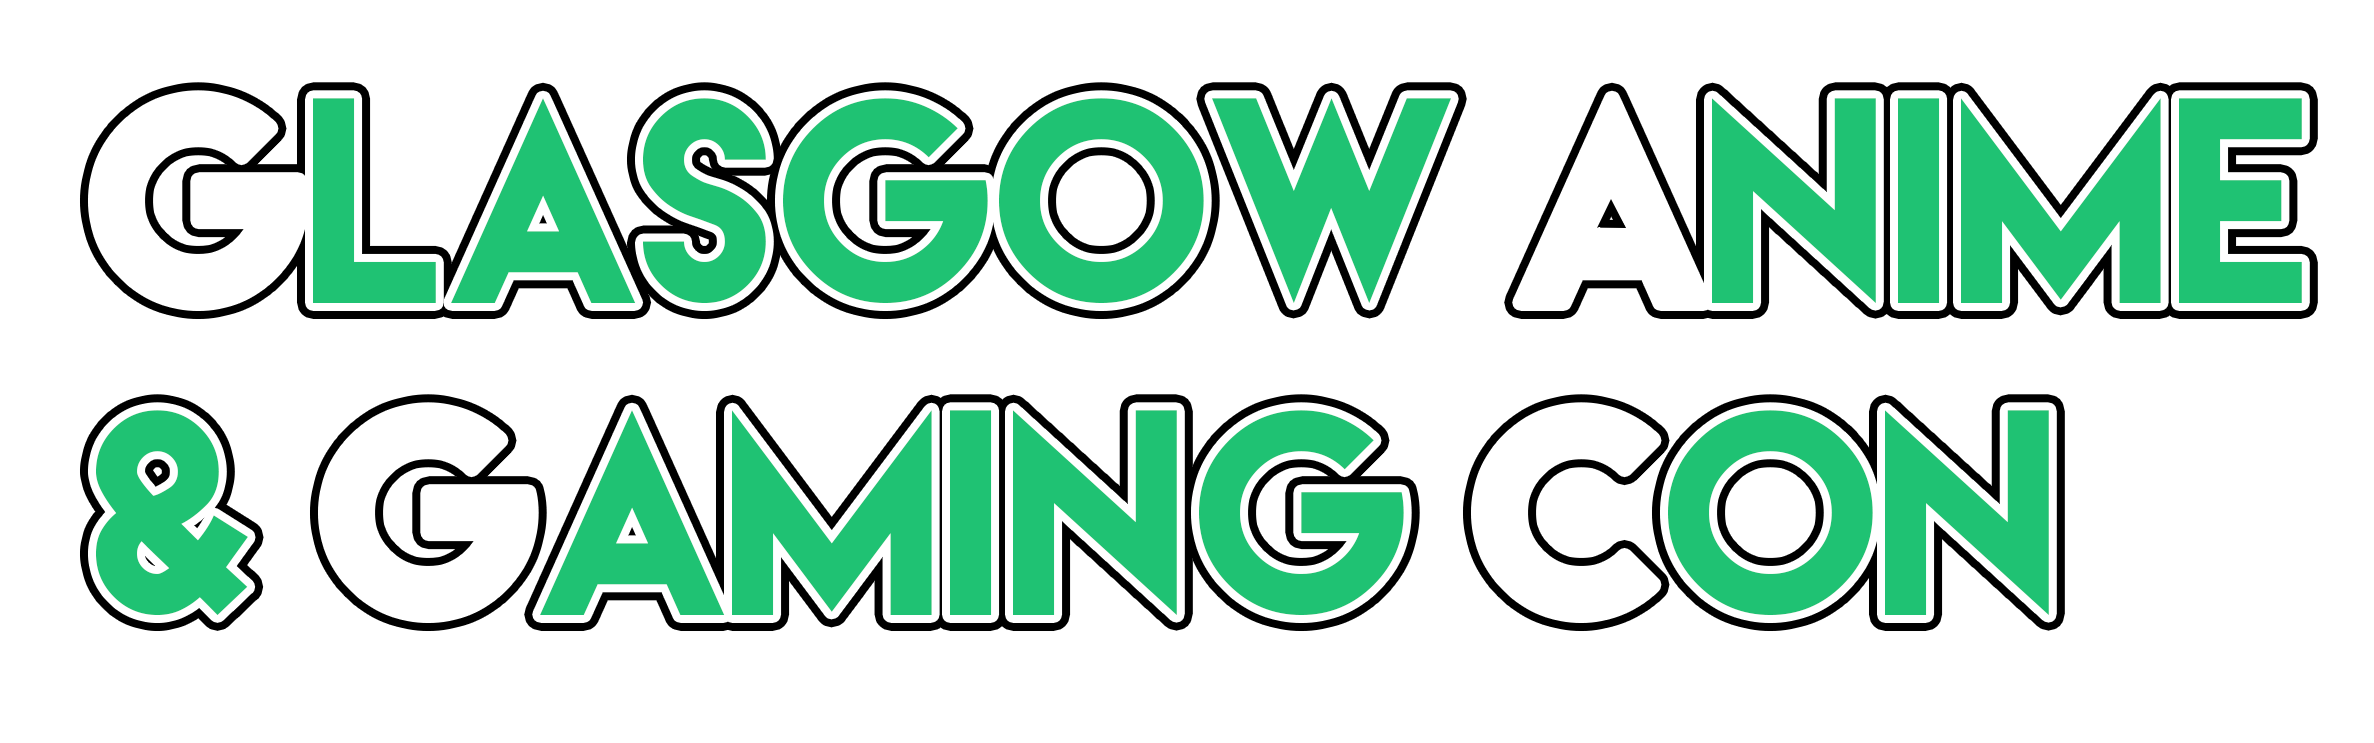 Glasgow Anime & Gaming Con